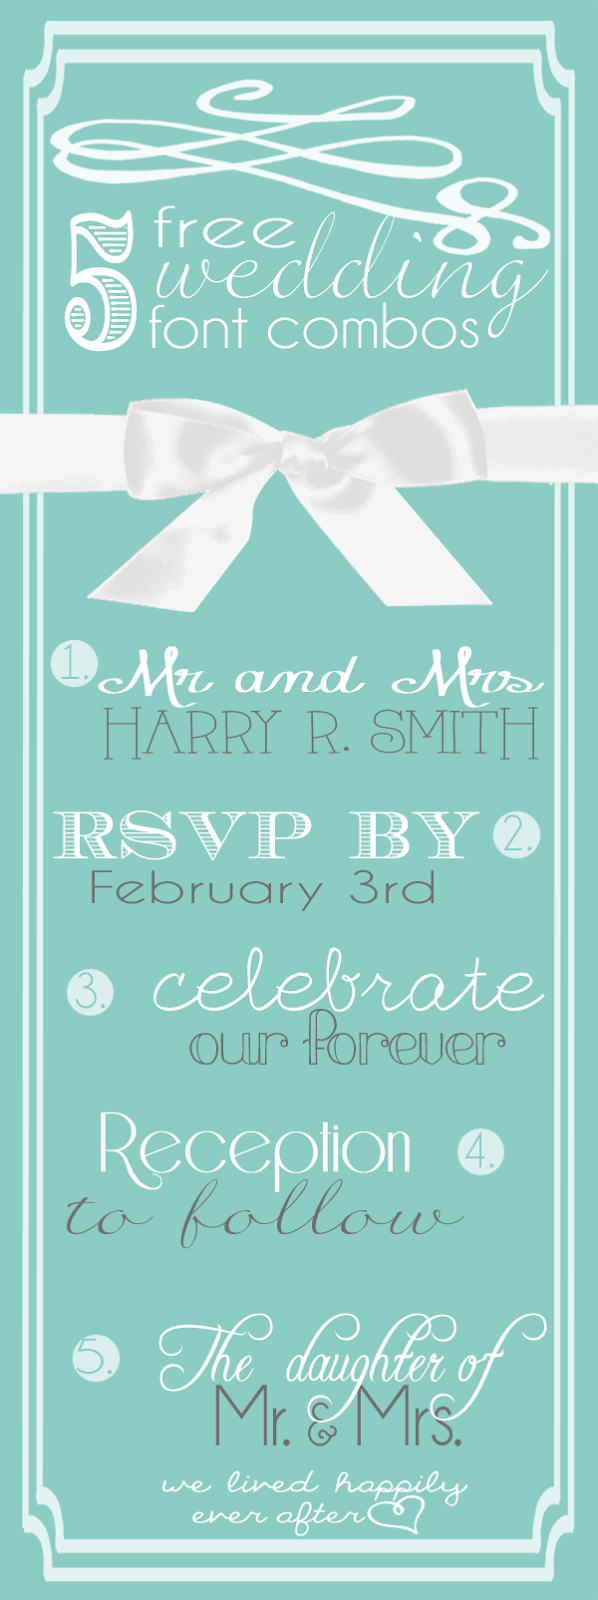 5 Lovely and Free Wedding Font Combinations Wedding